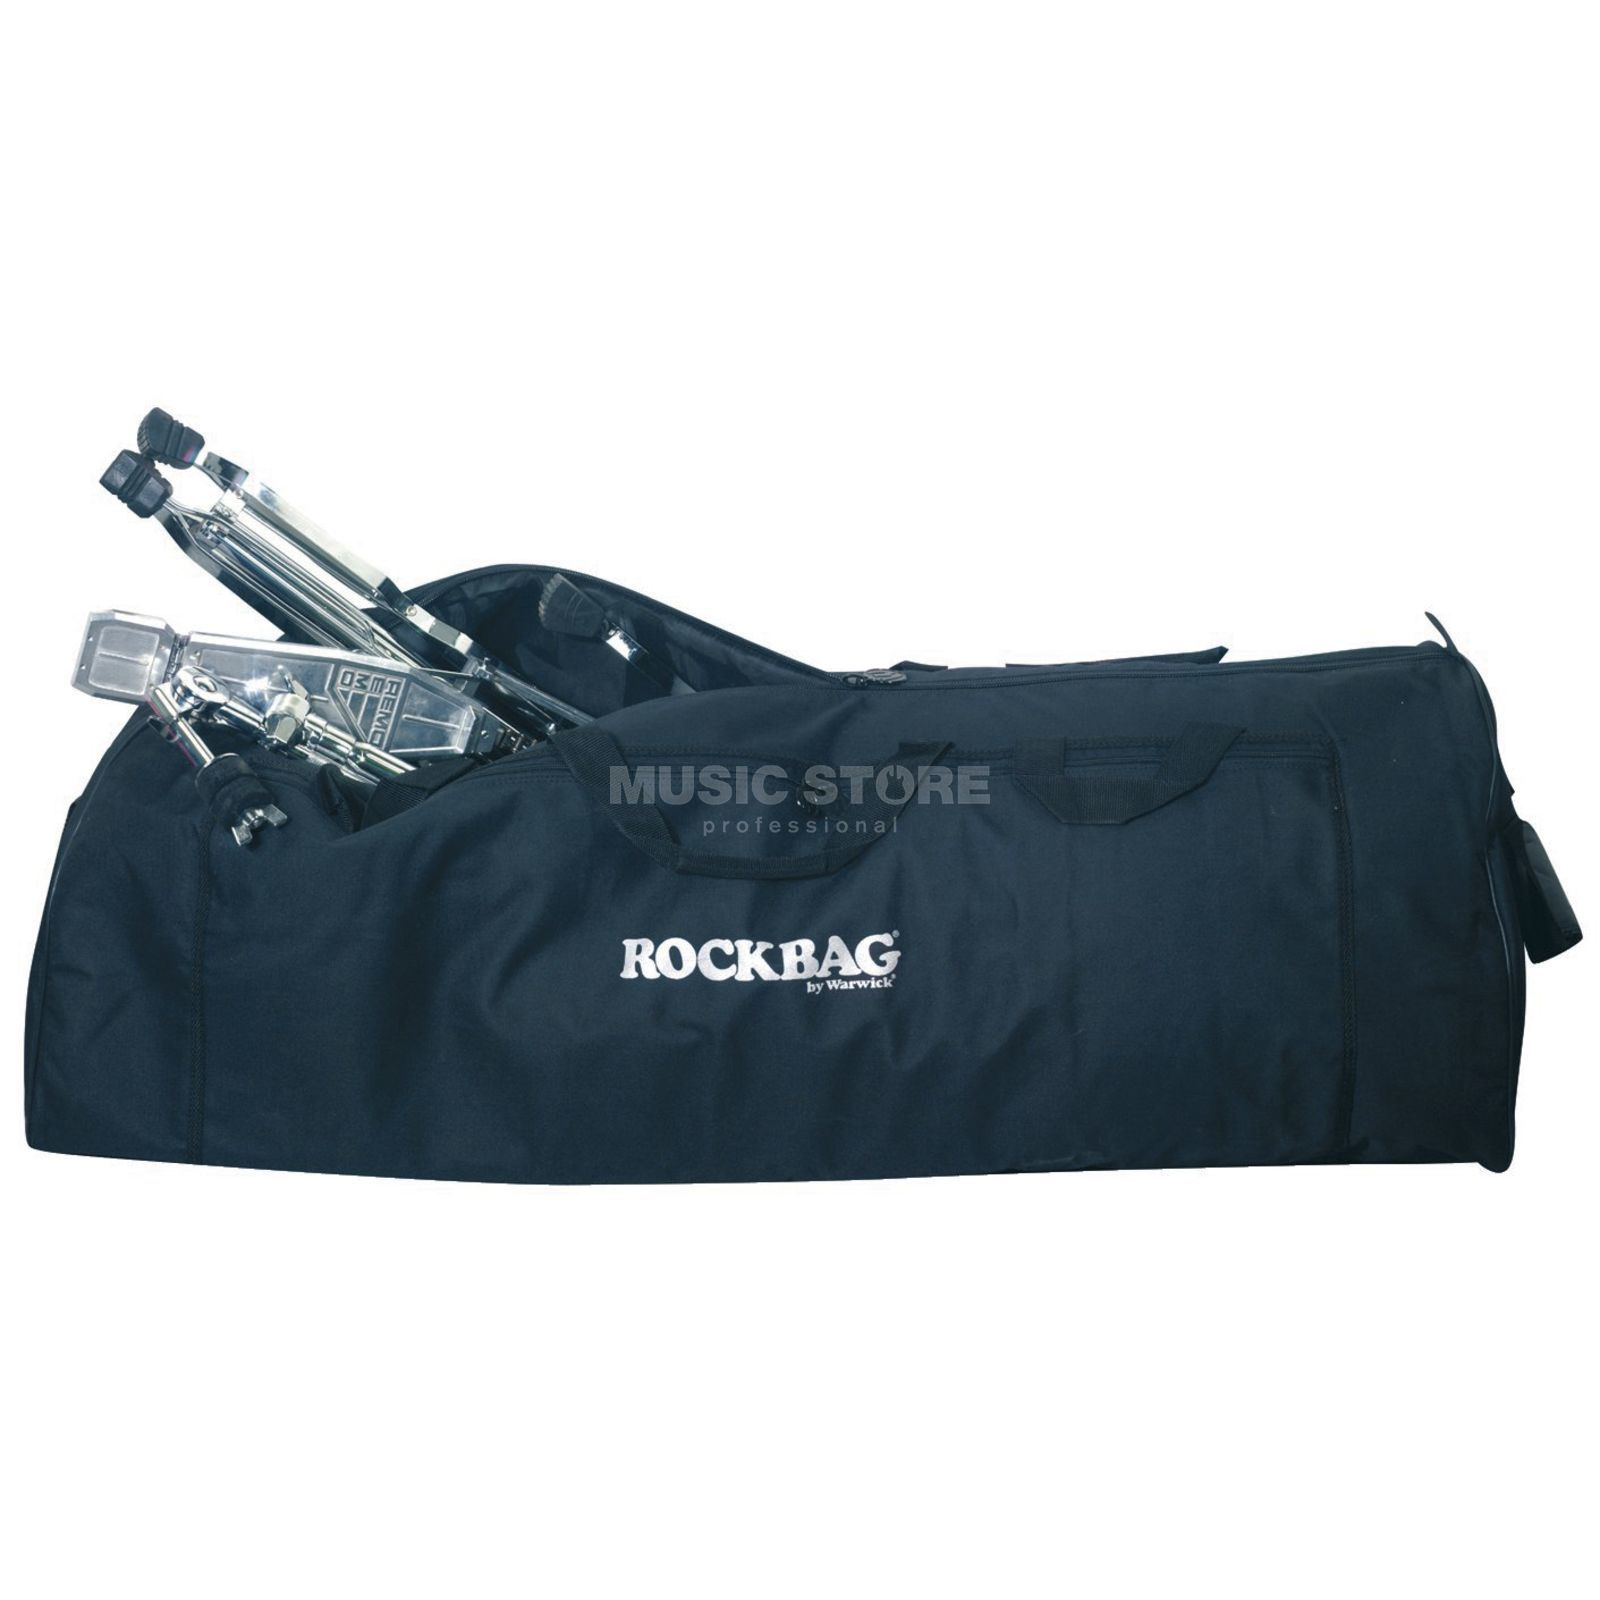 "Rockbag Hardware Bag RB 22501 B, 43""x16""x14"" Produktbild"